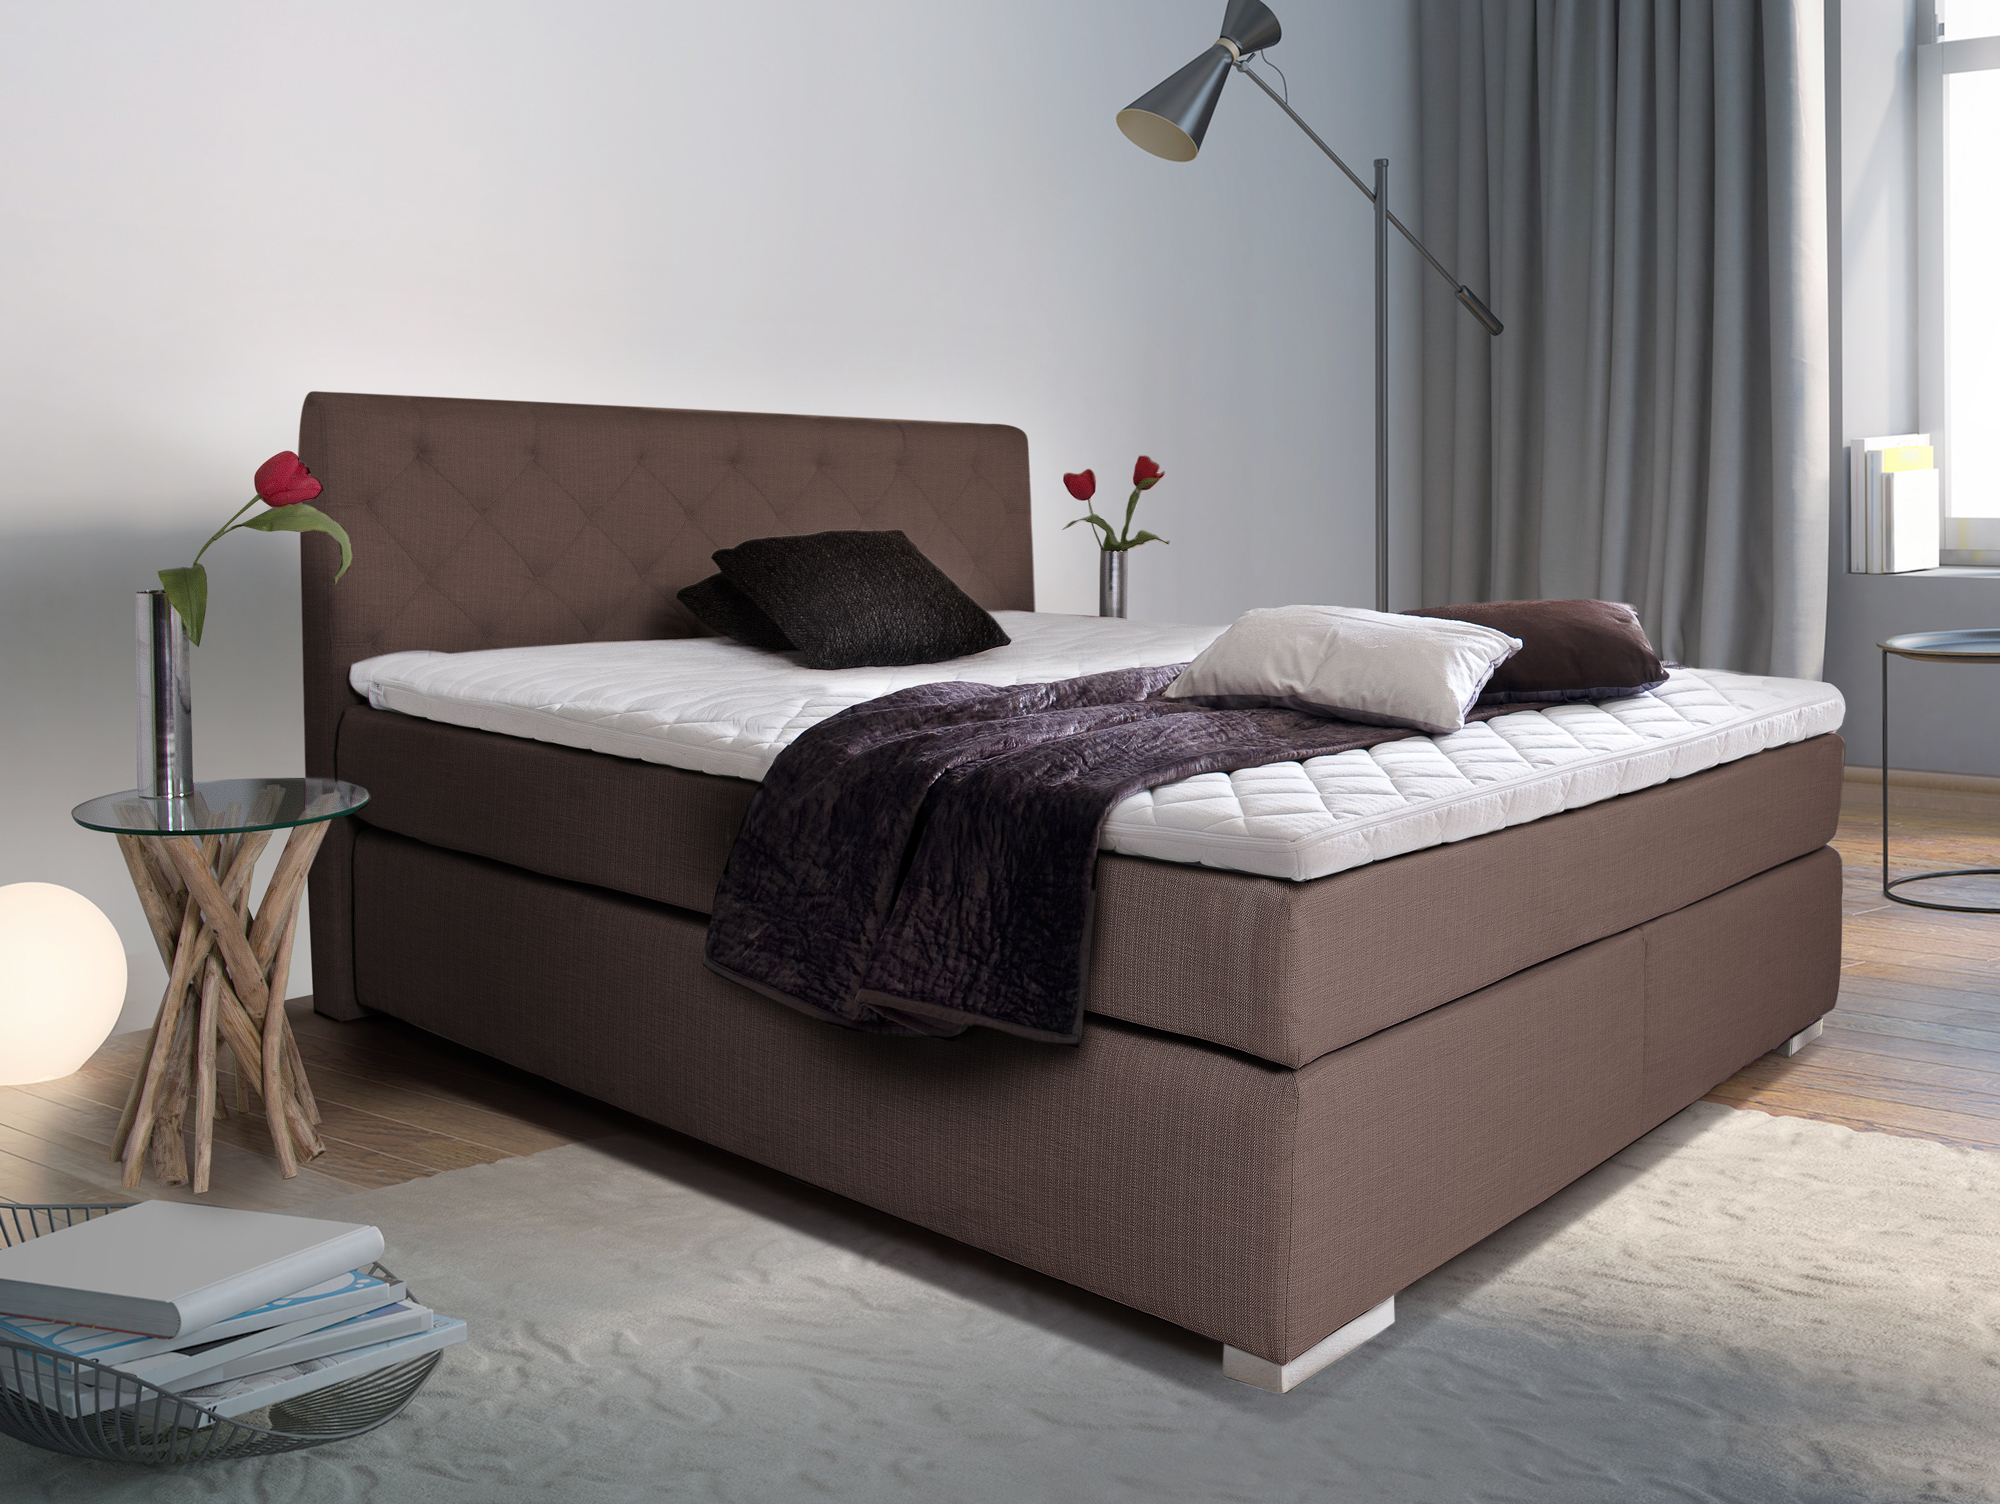 premium boxspringbett inkl kopfteil 180 x 200 cm altrosa h rtegrad 2. Black Bedroom Furniture Sets. Home Design Ideas